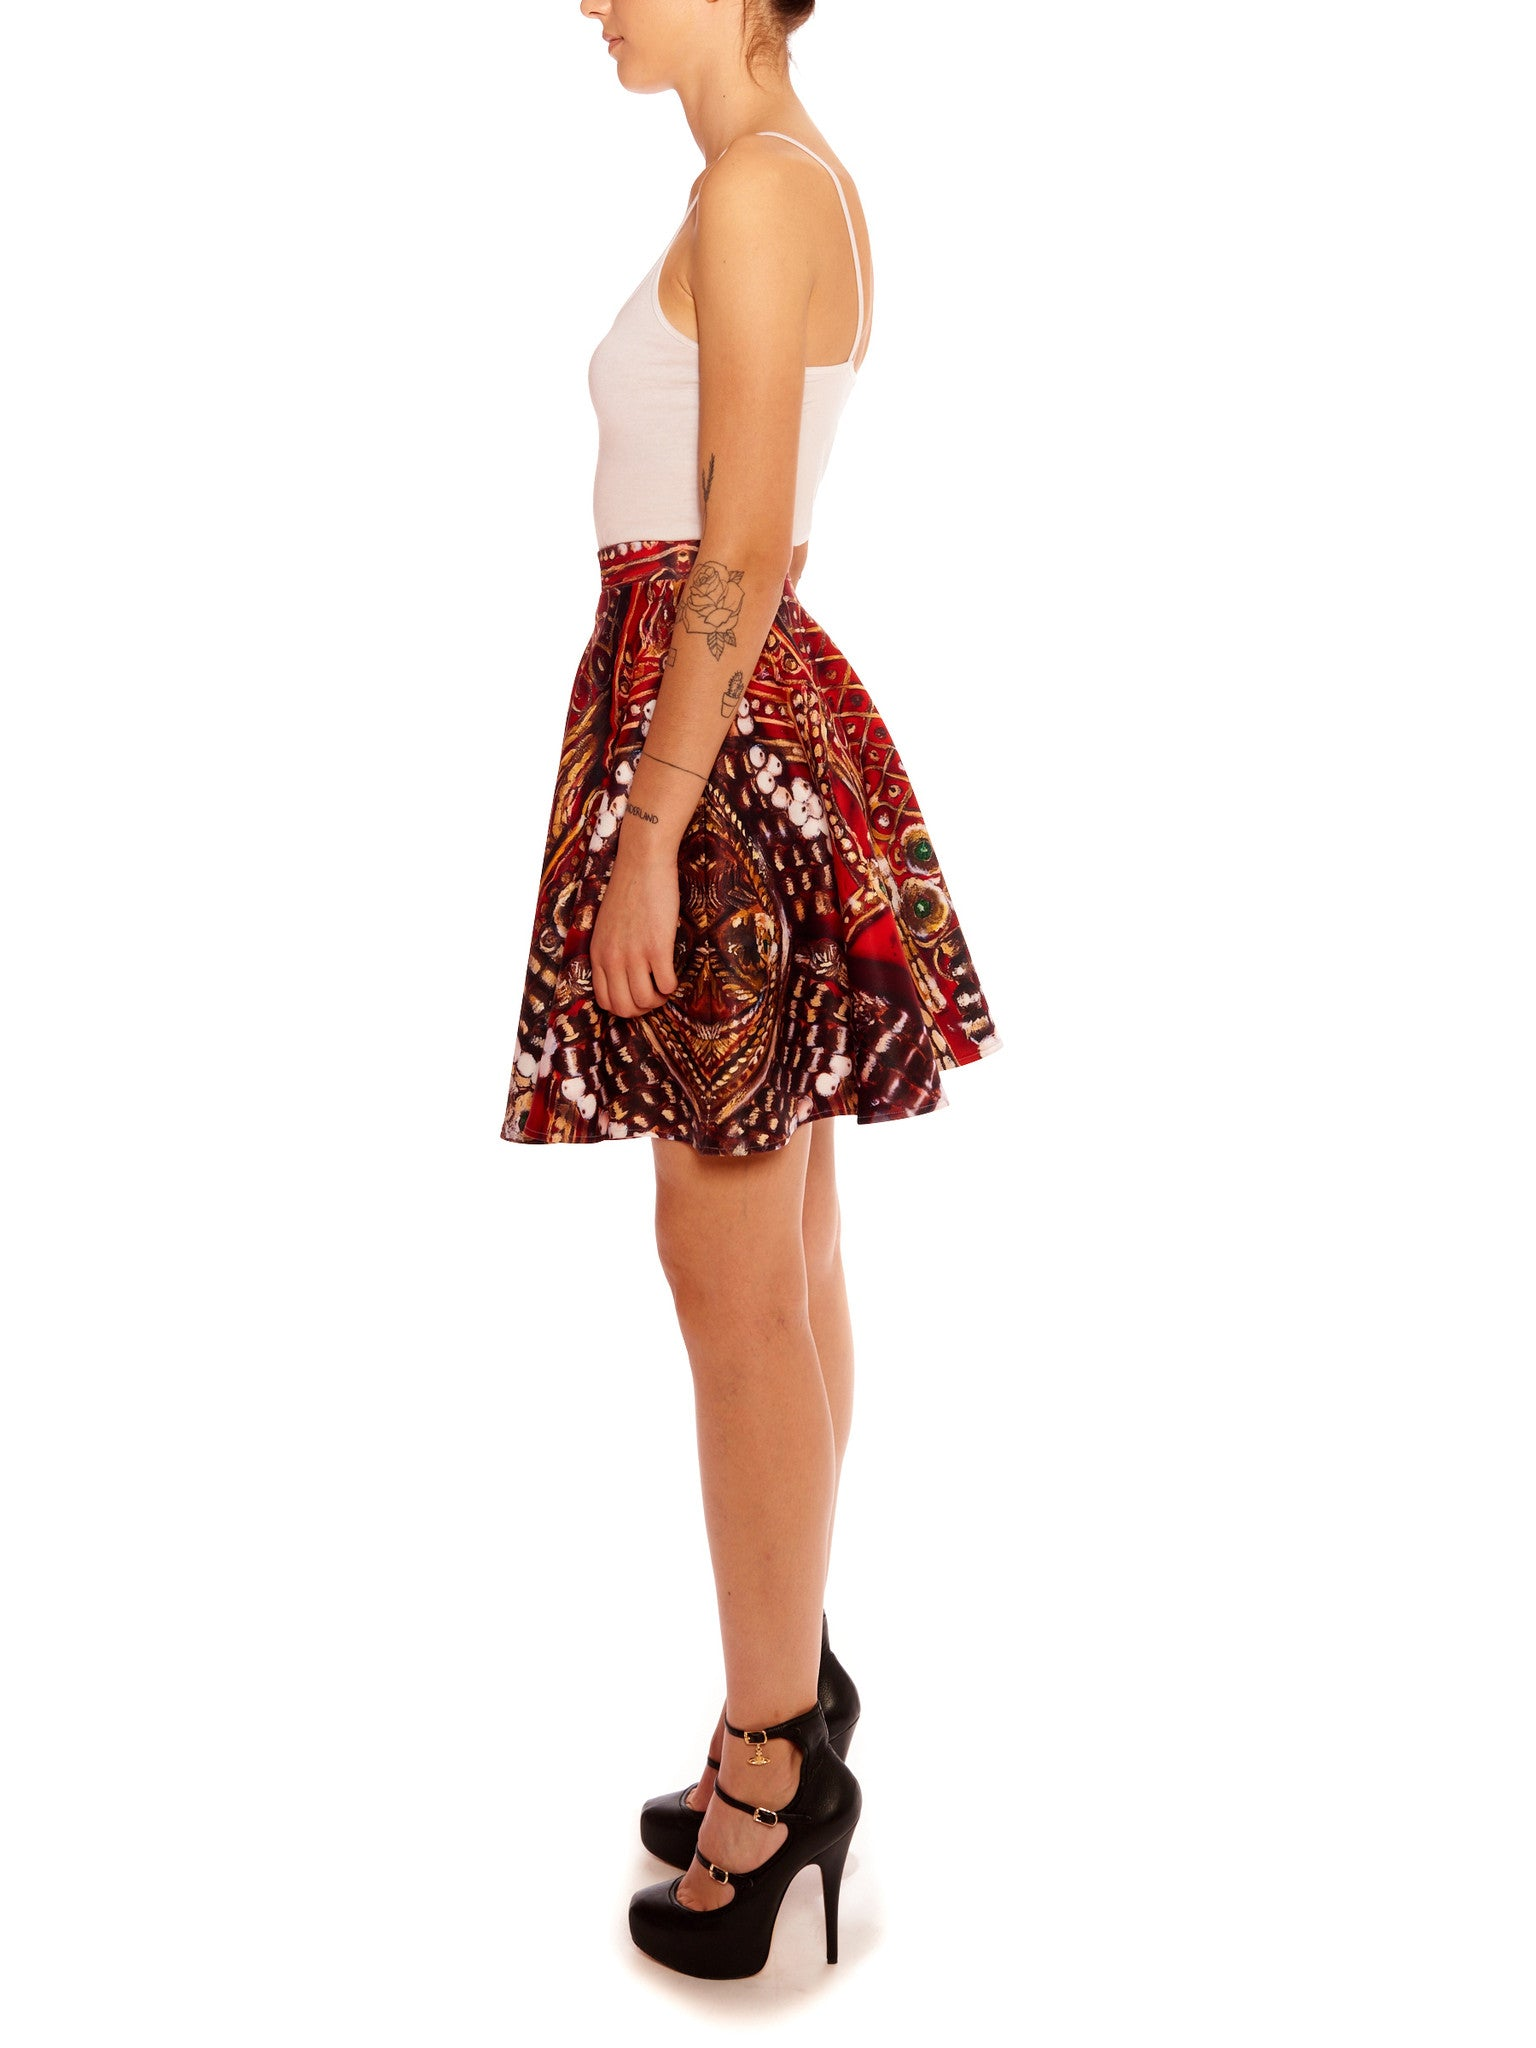 Matador Scuba Circle Skirt - Nuvango Gallery & Goods - 4